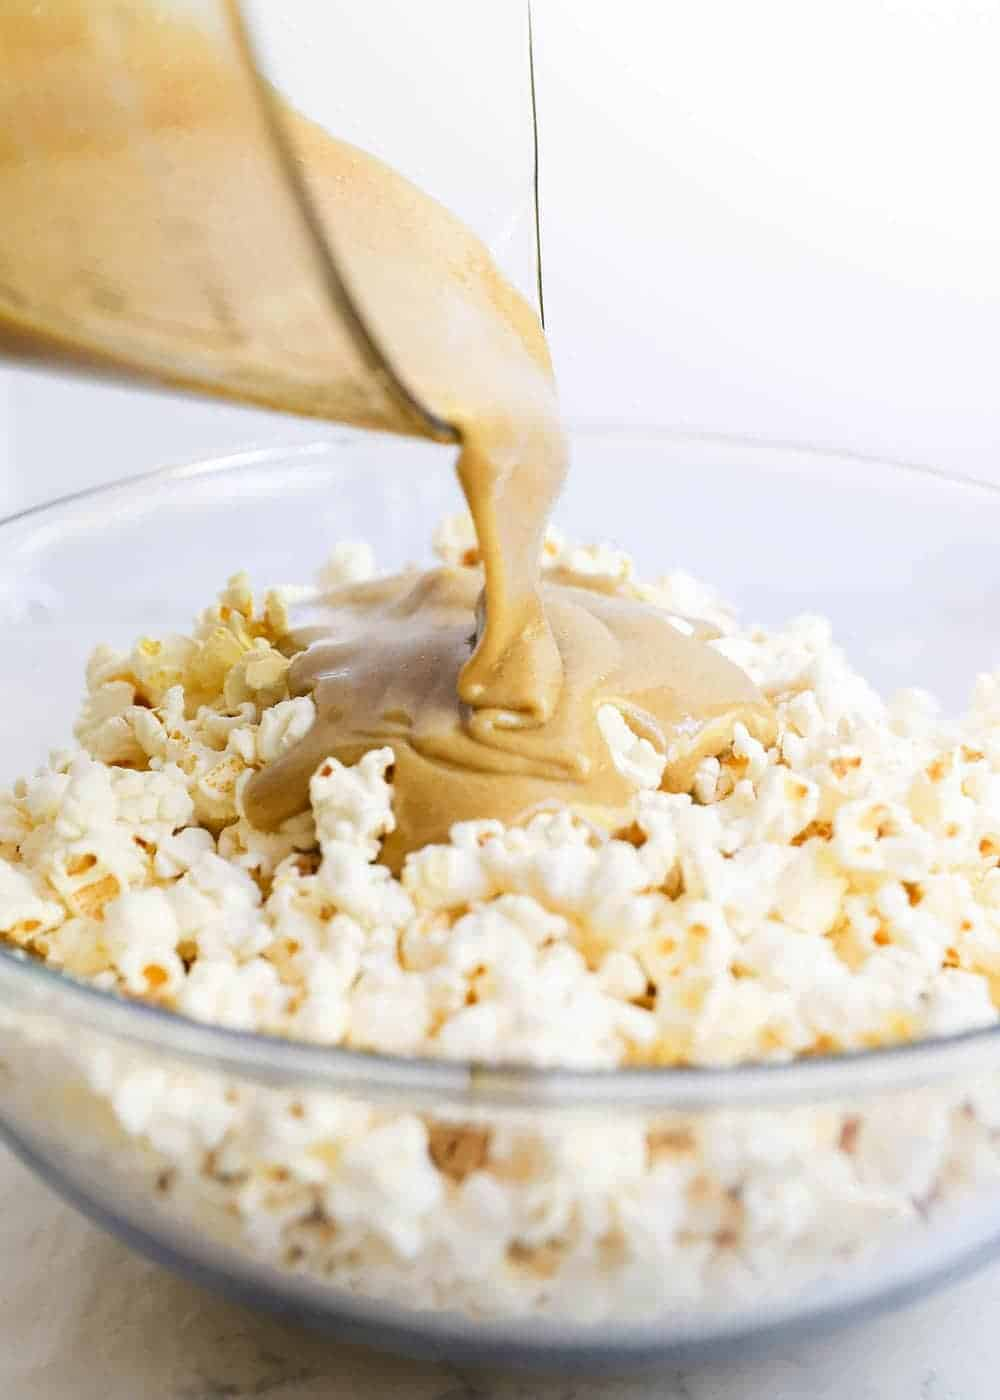 pouring caramel into bowl of popcorn